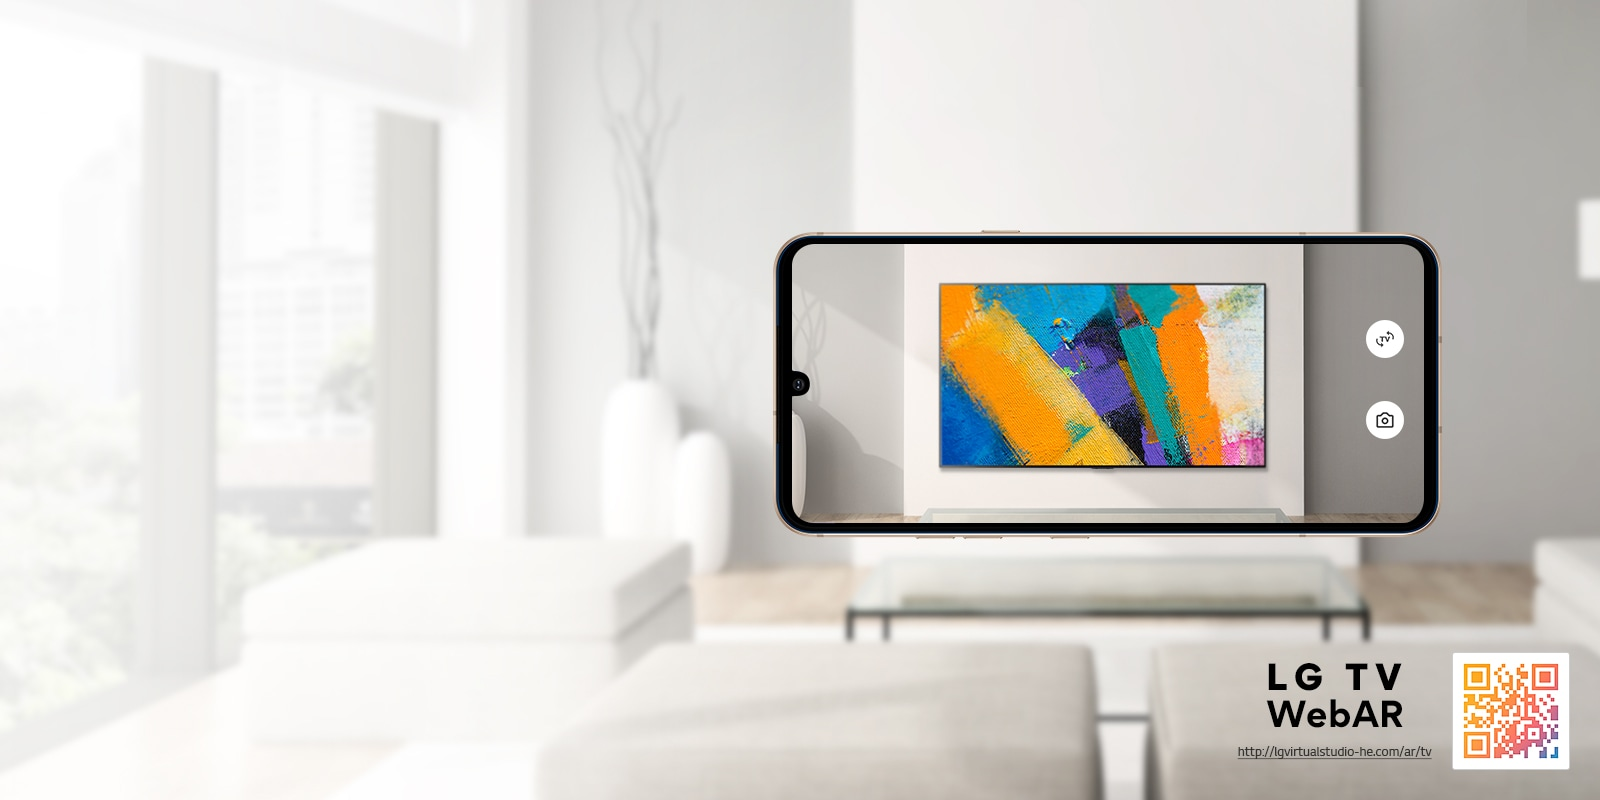 This is a Web AR simulation image of LG OLED TV. Mobile phone images are overlapped on a minimalist space. There is a QR code at the bottom right.